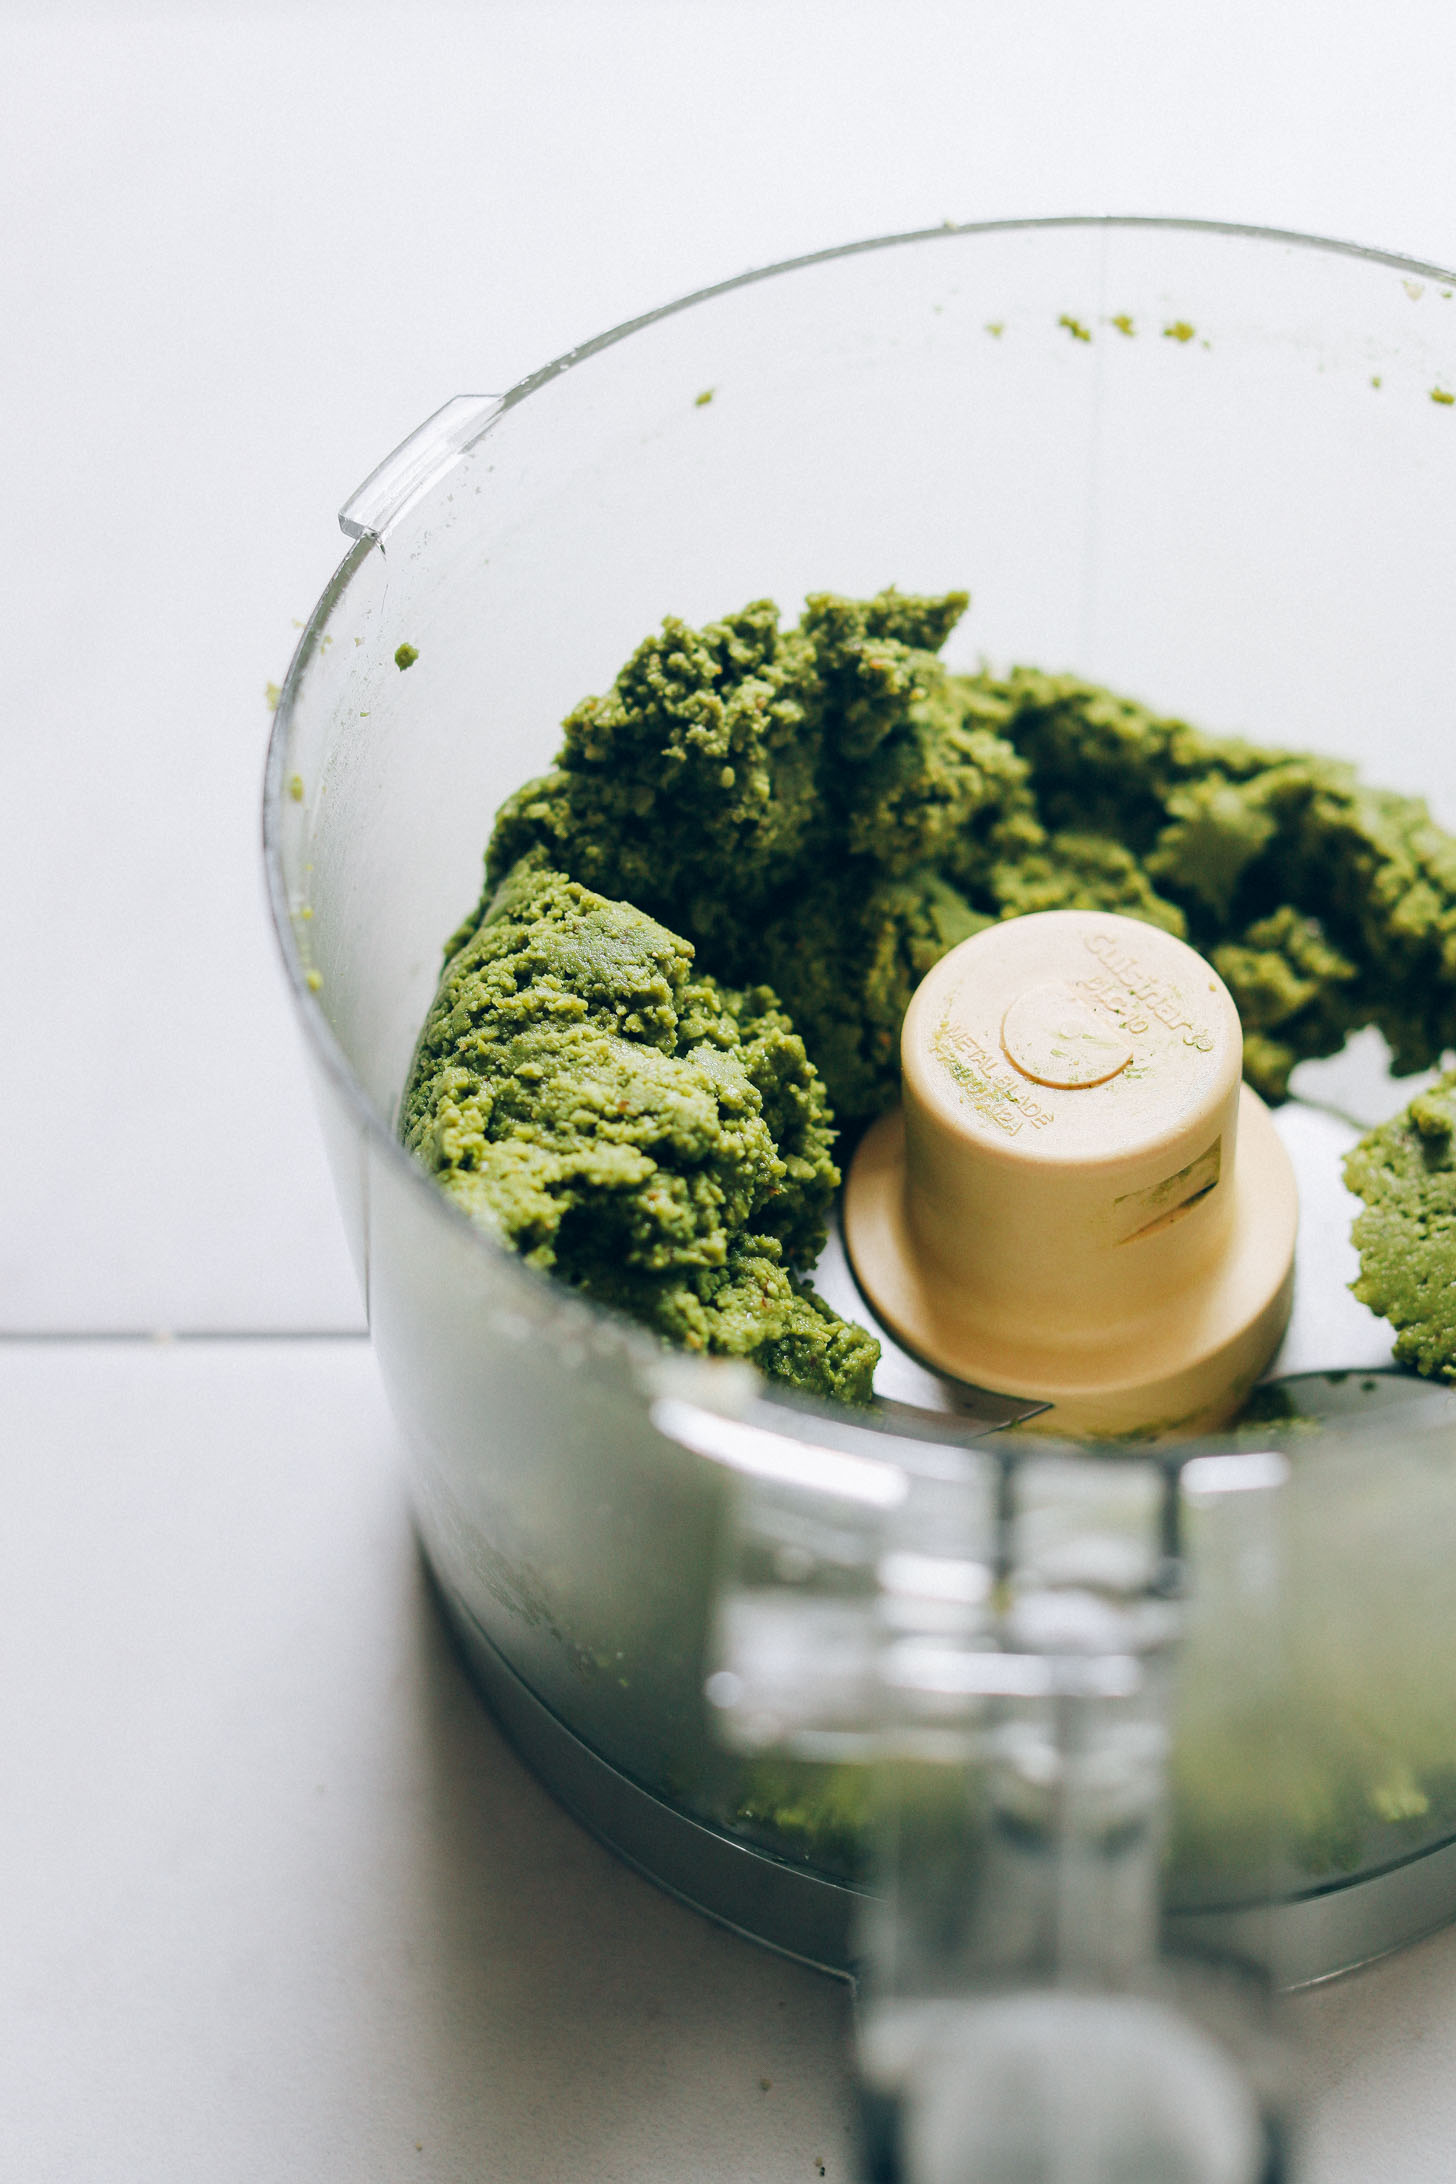 Food processor with dough for making plant-based Matcha Bliss Balls